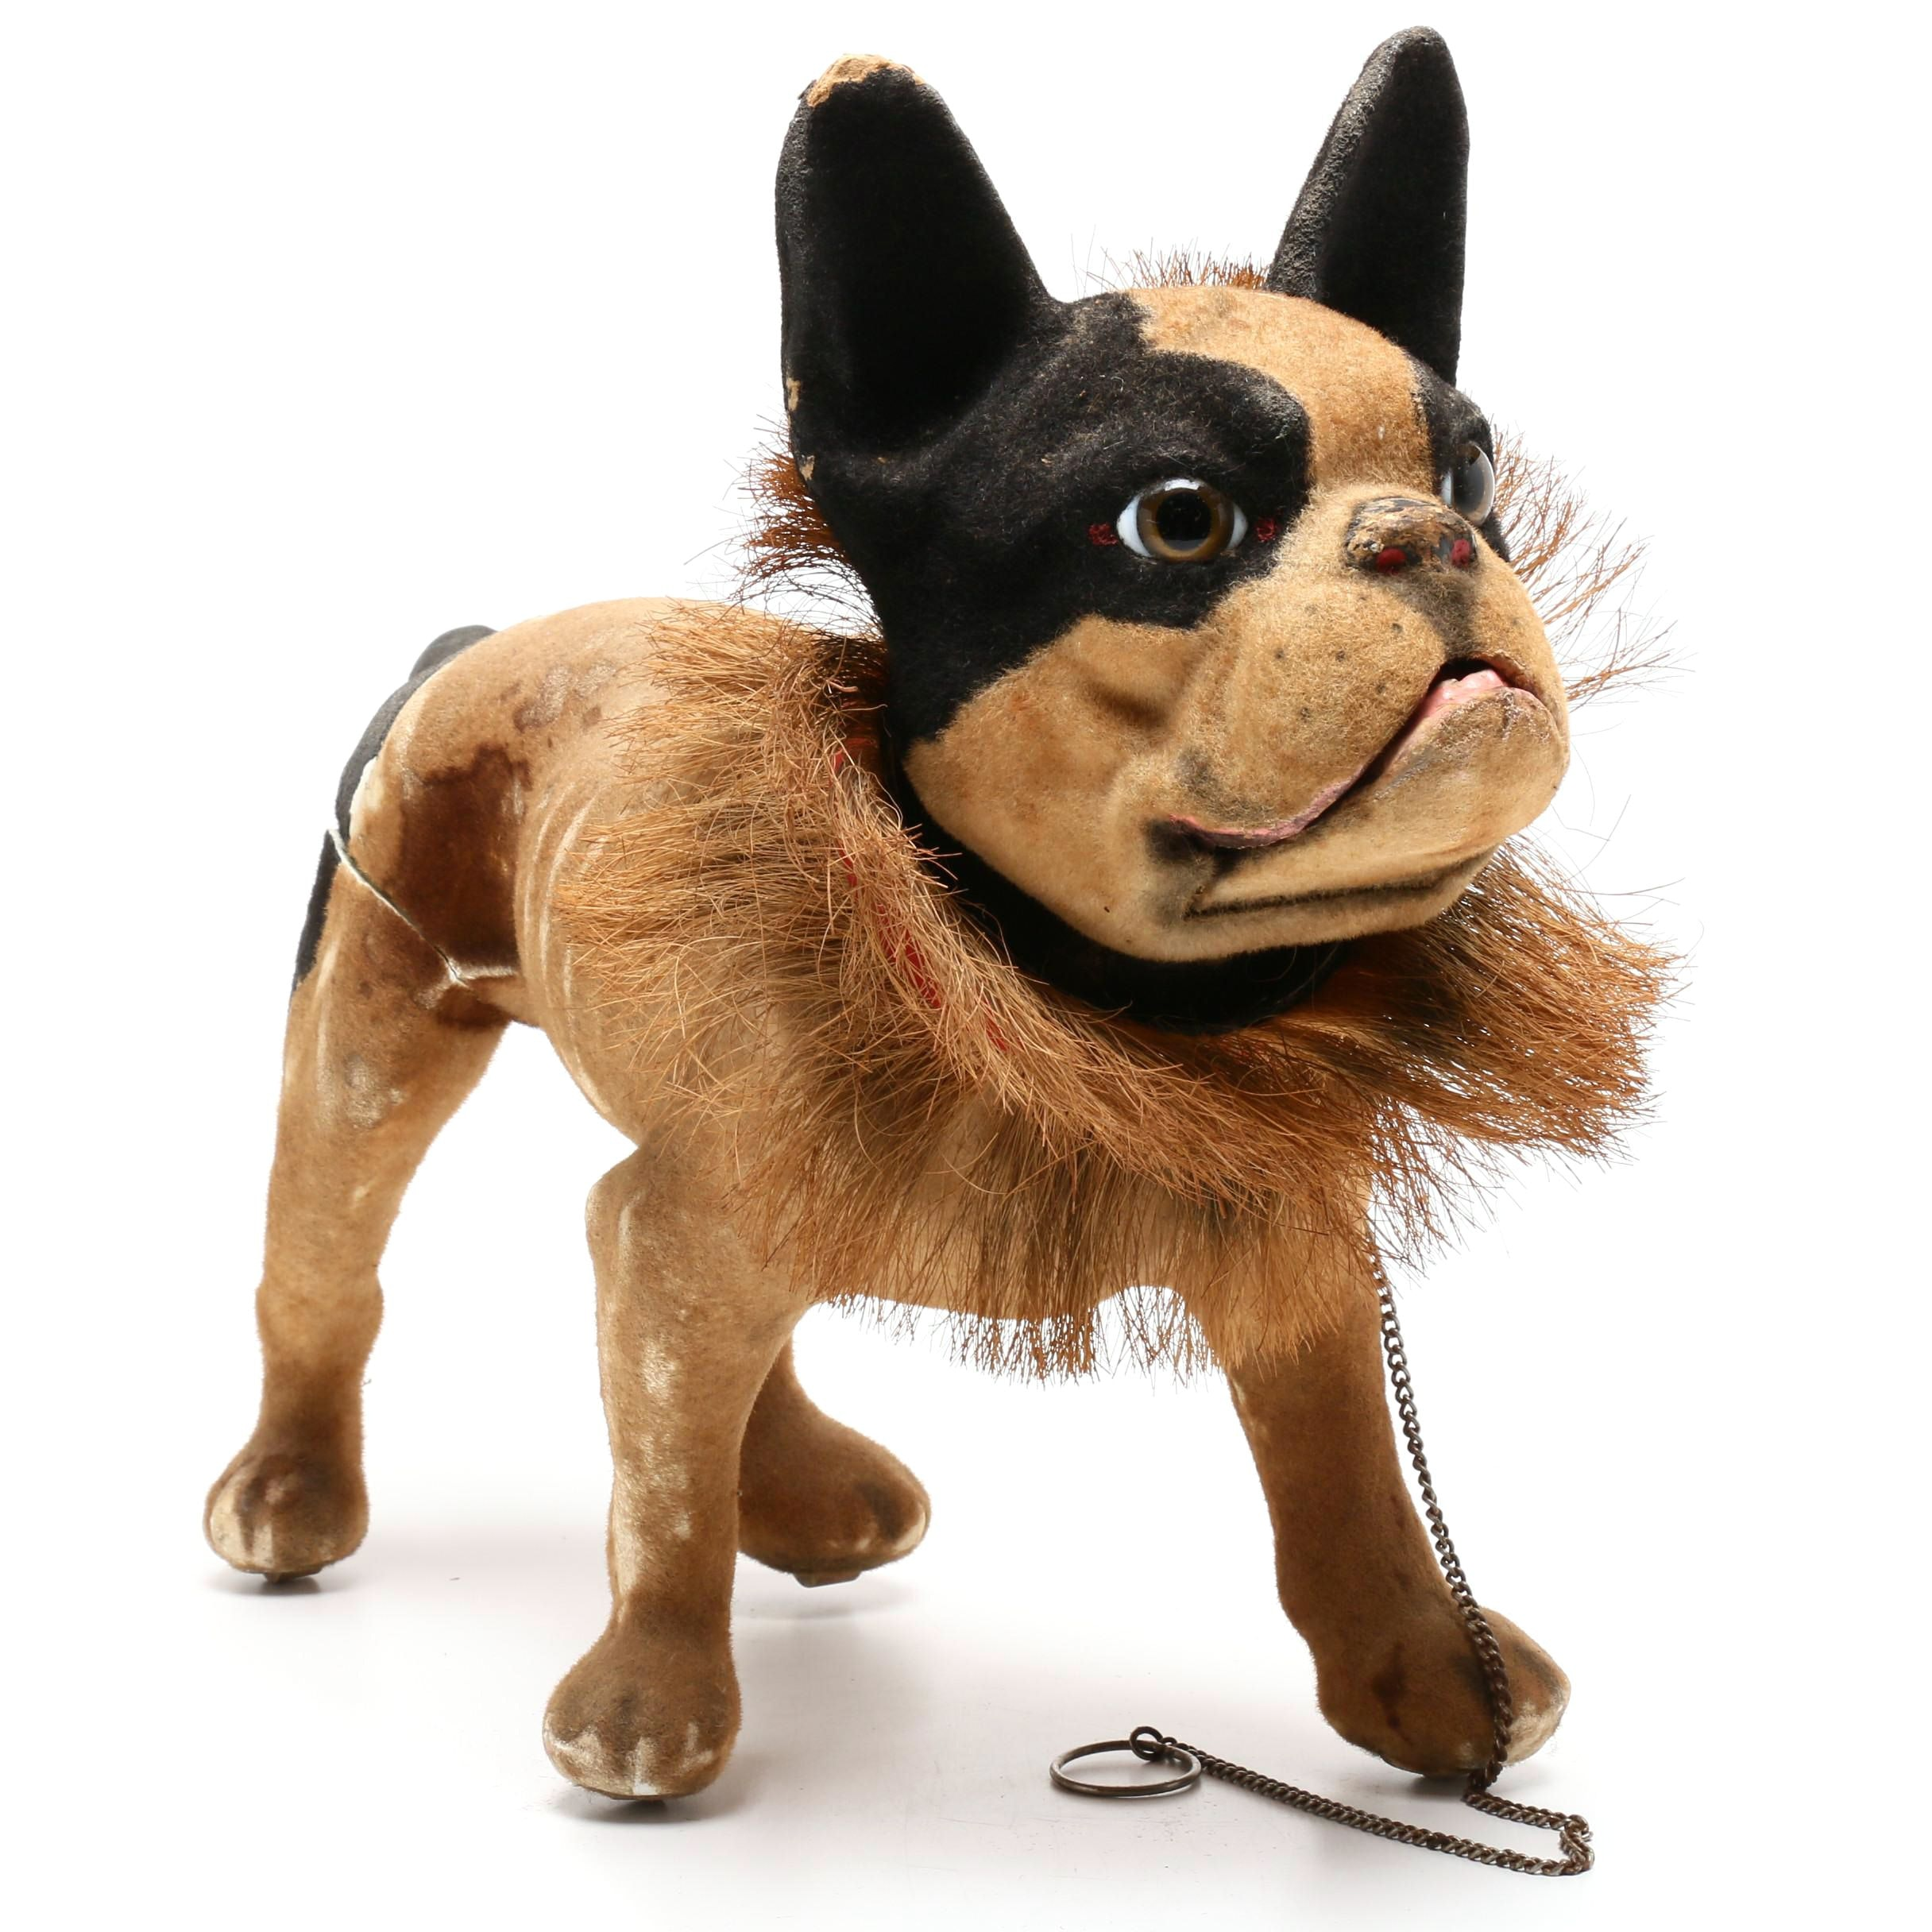 Barking French Bulldog Automation Toy By Roullet & Decamps, Circa 1890s